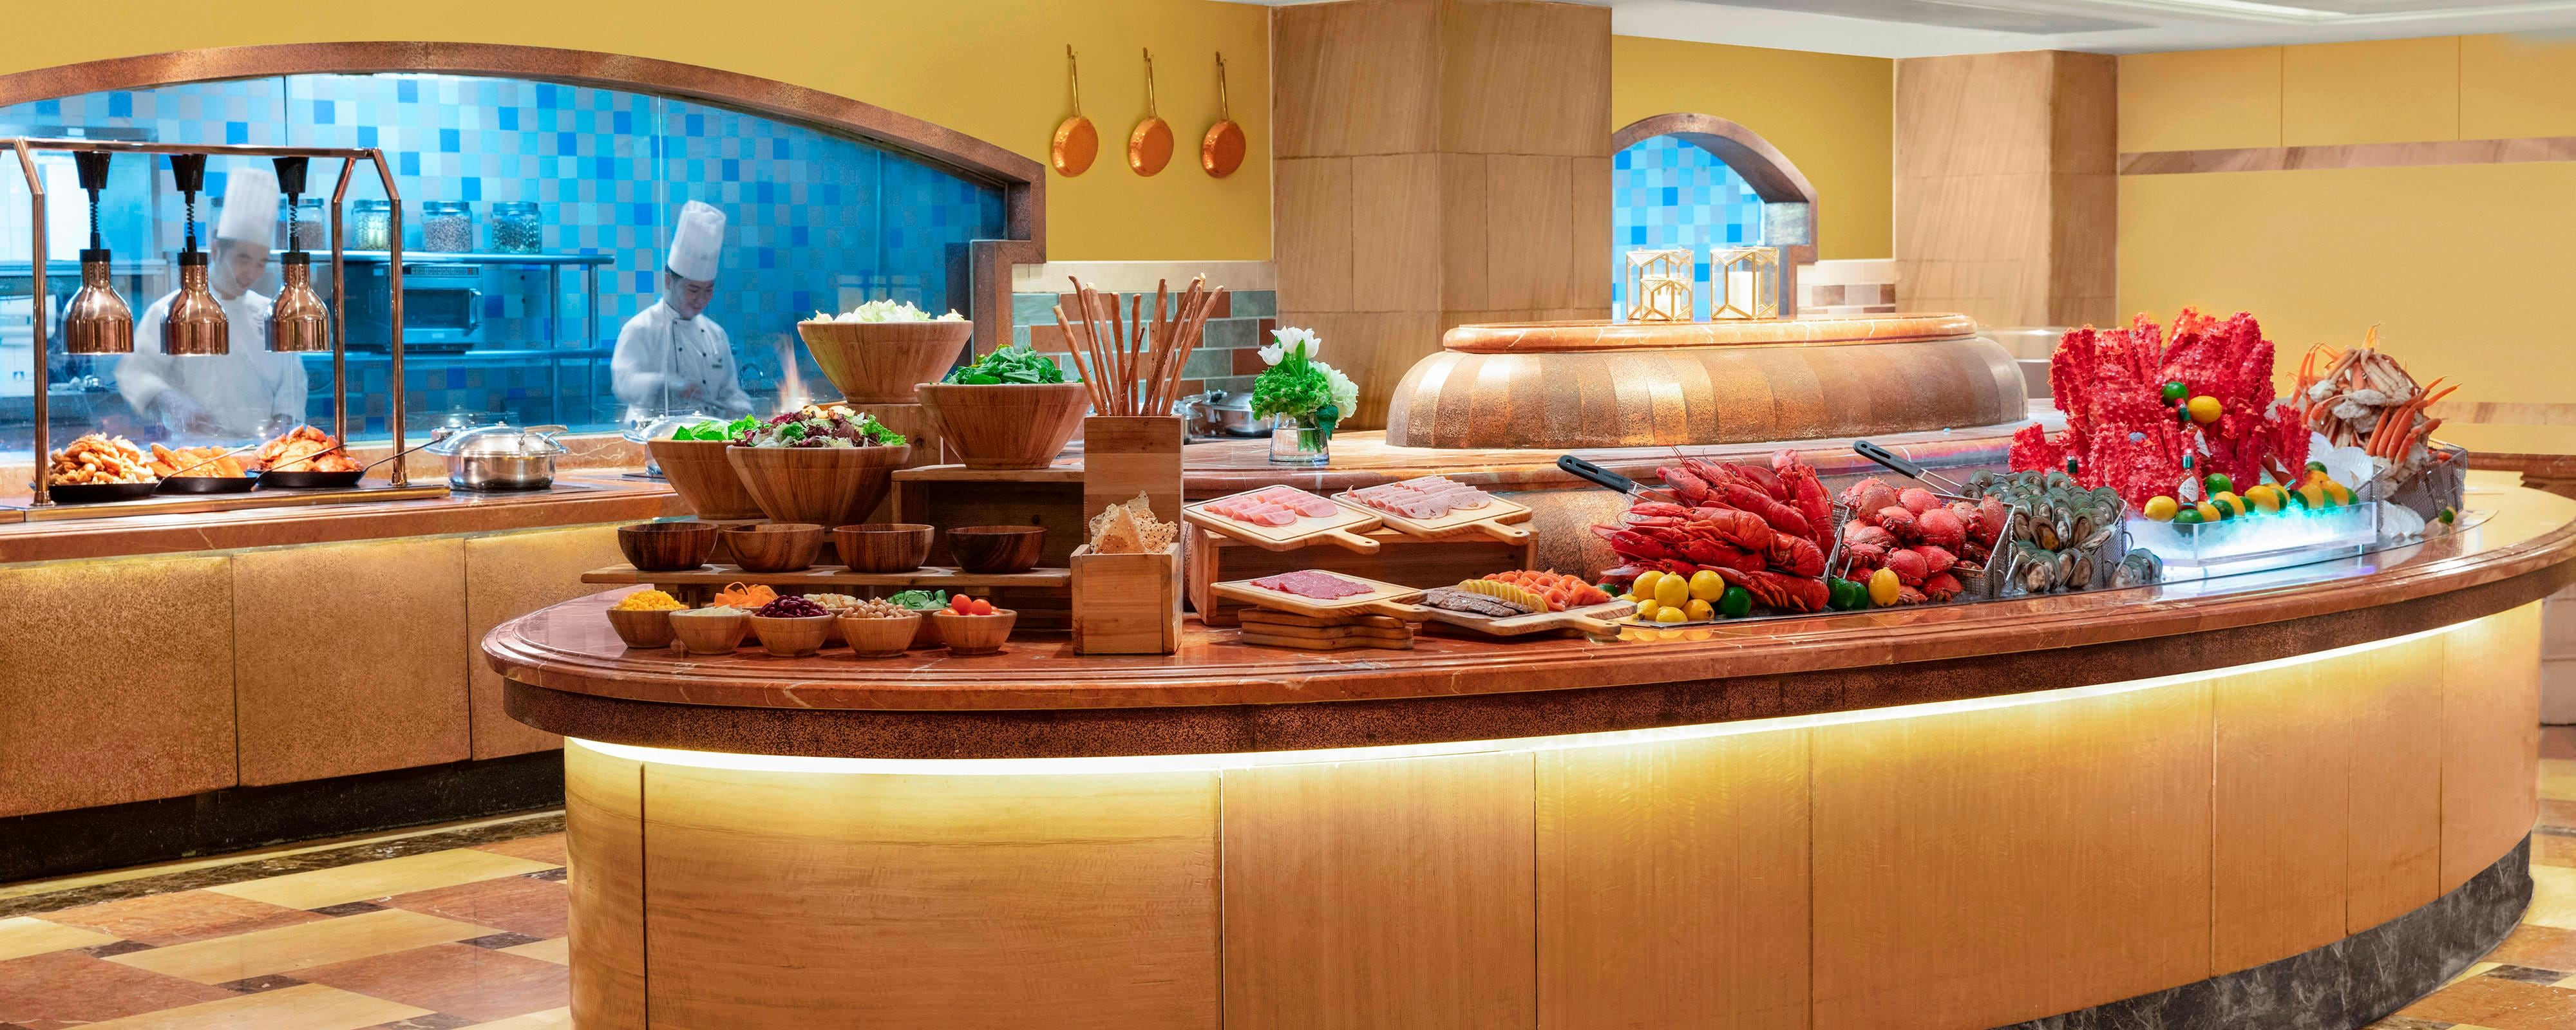 Shanghai Buffet And Restaurant Promotion Near Honqiao